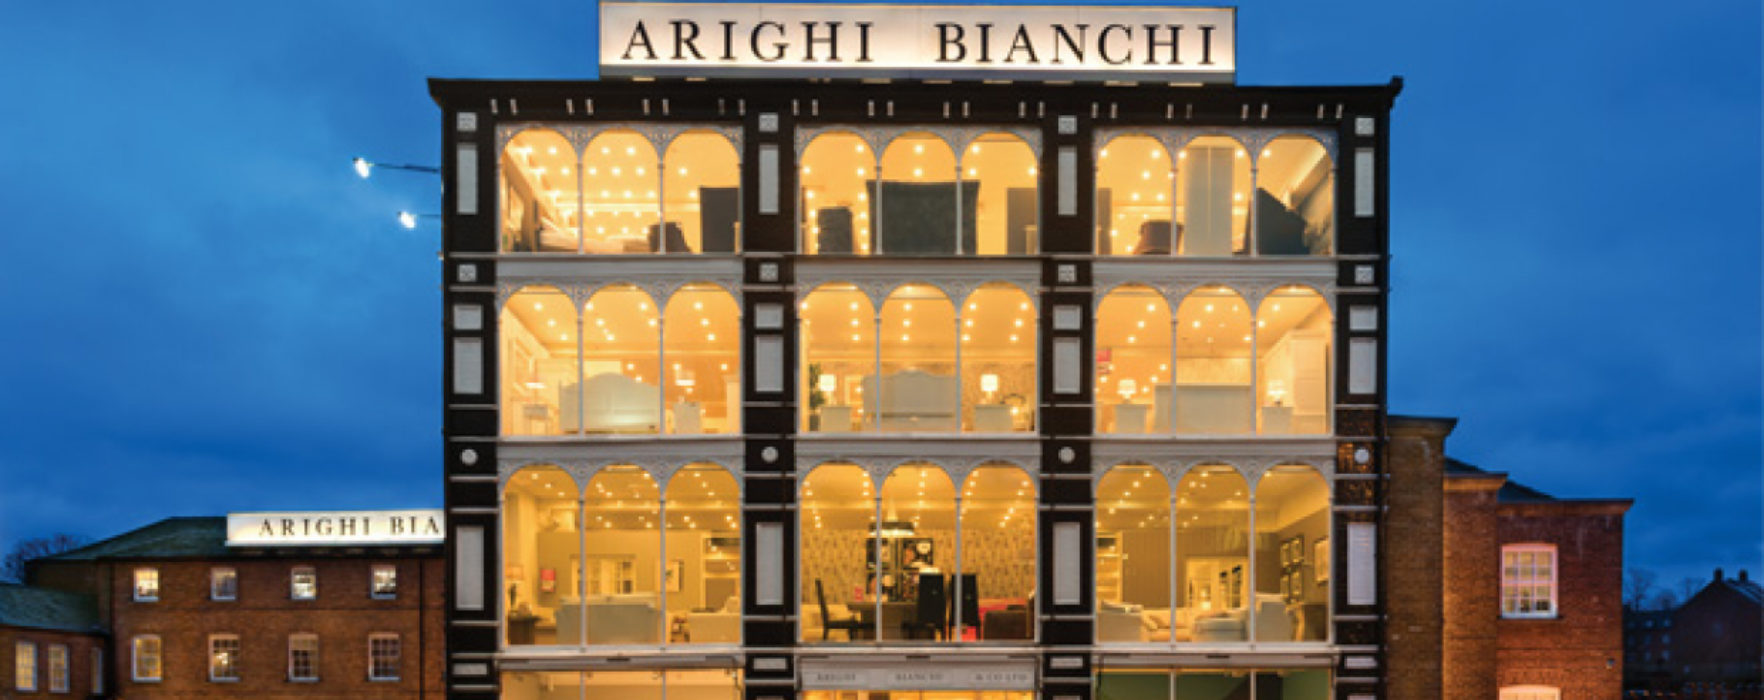 CHESHIRE: VIVA discovers the fourth generation of Arighi Bianchi